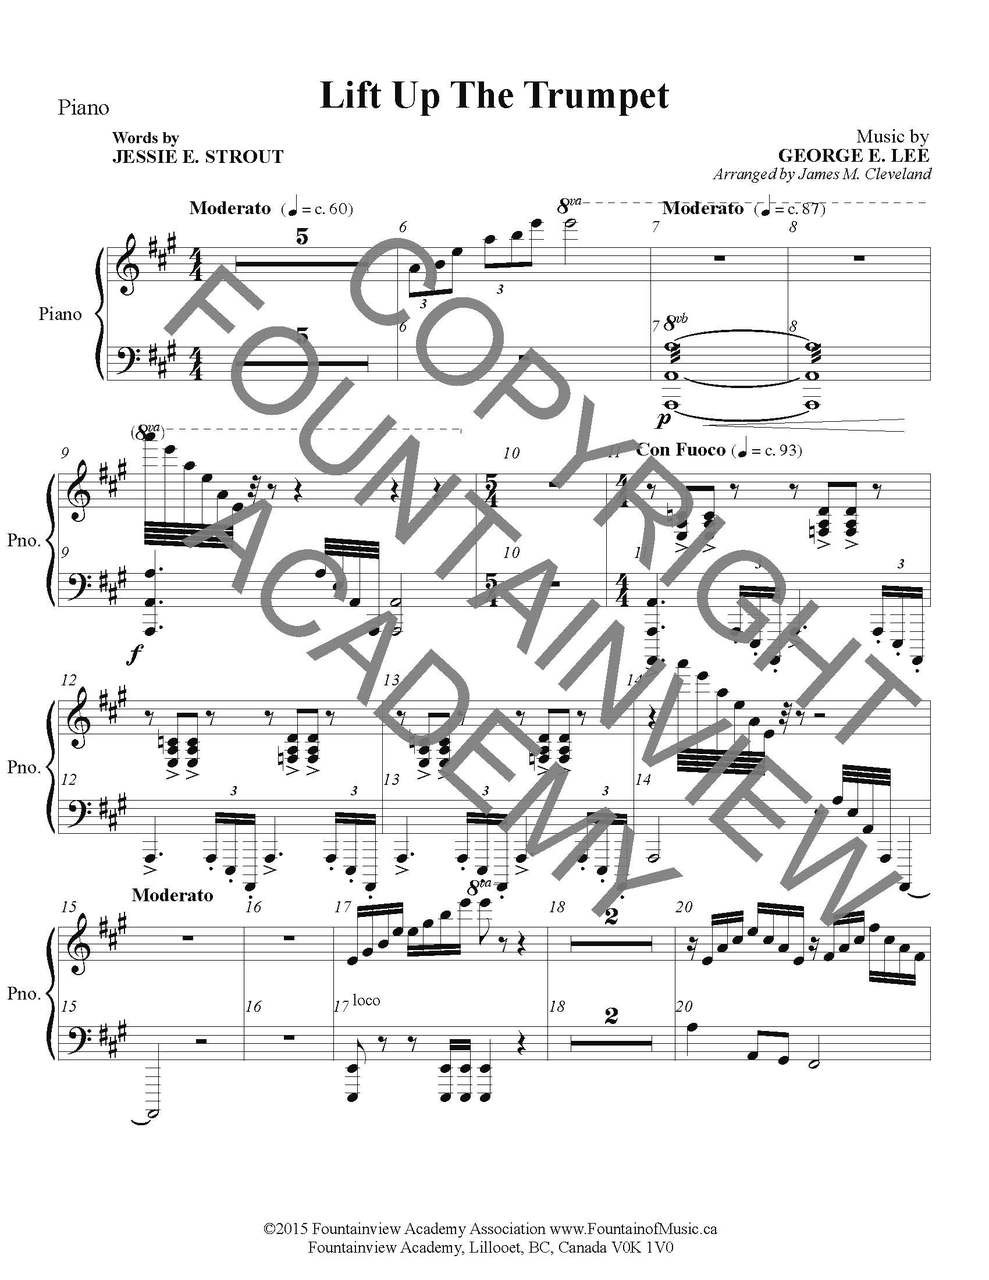 Lift Up The Trumpet Score And Instrumental Parts Fountainview Store Piano Diagram Image 1